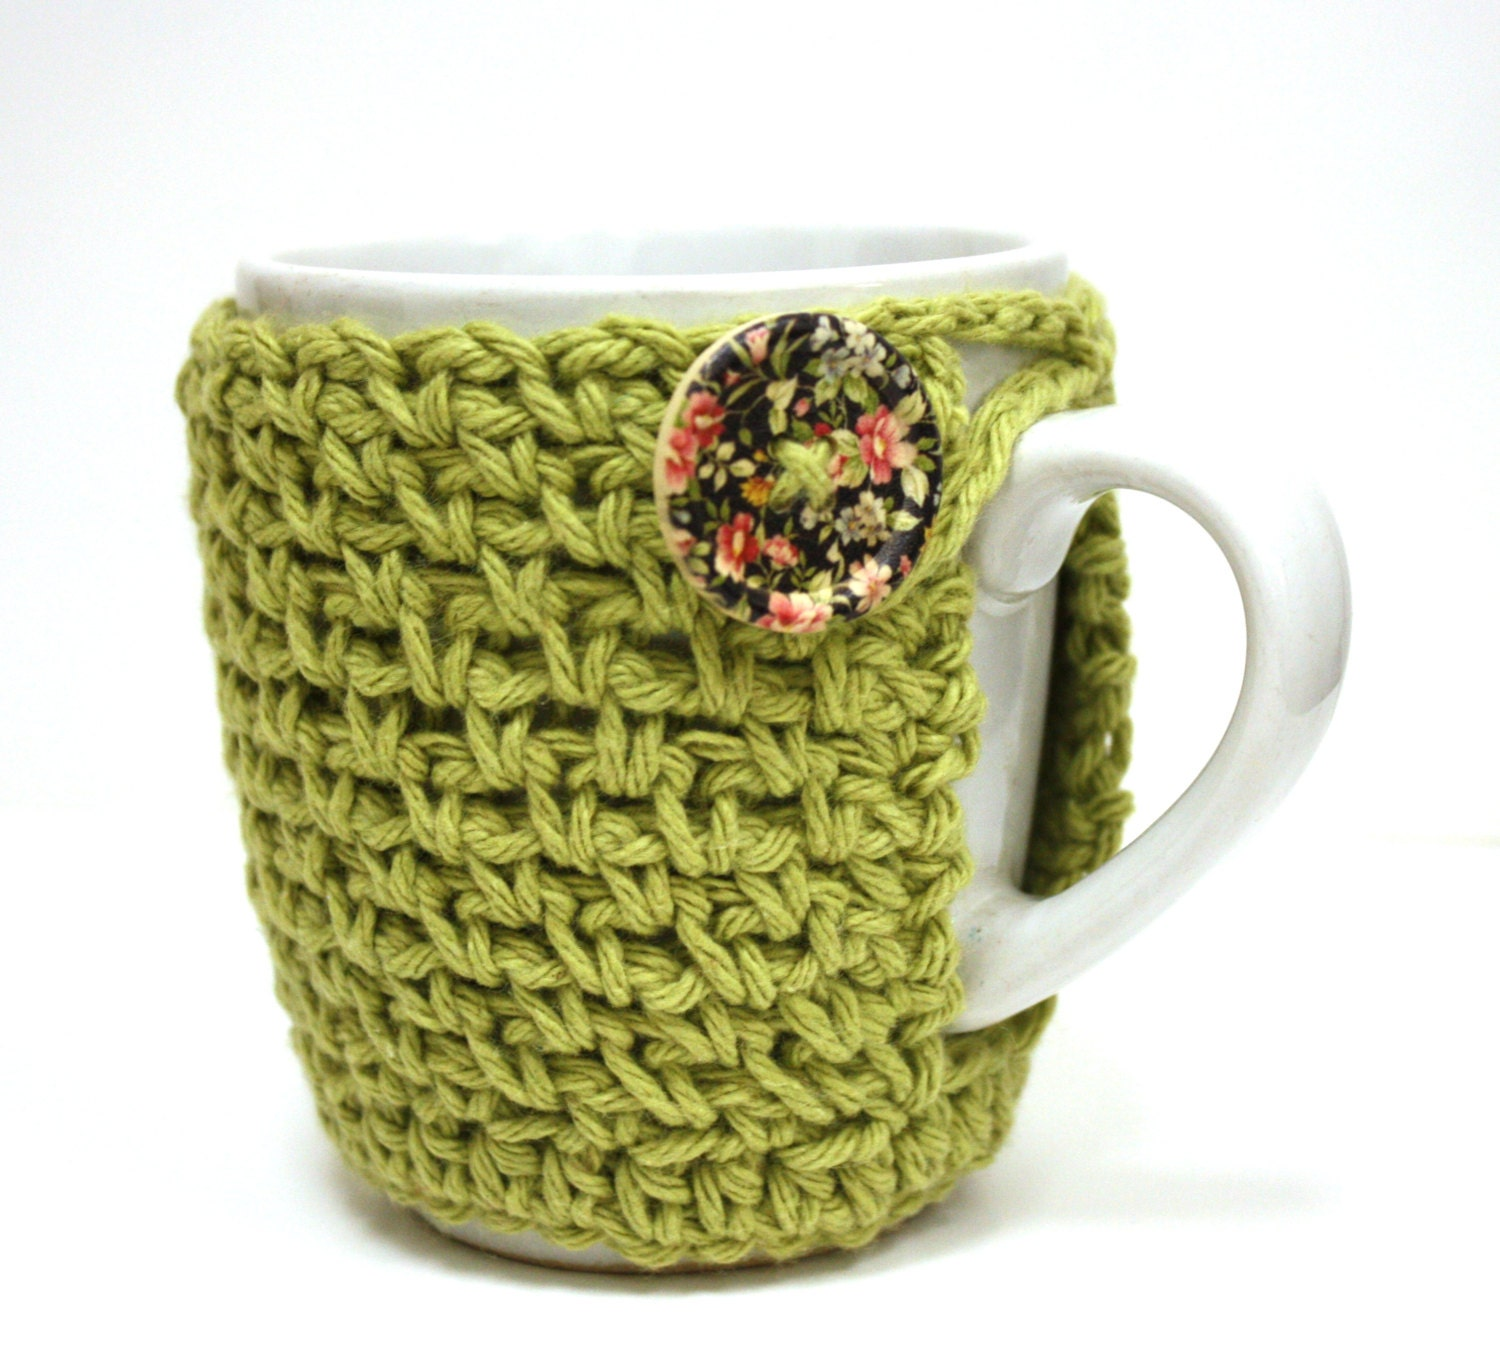 Crochet Coffee Cup Cozy Cup Cozy Sleeve Novelty by Sweetbriers